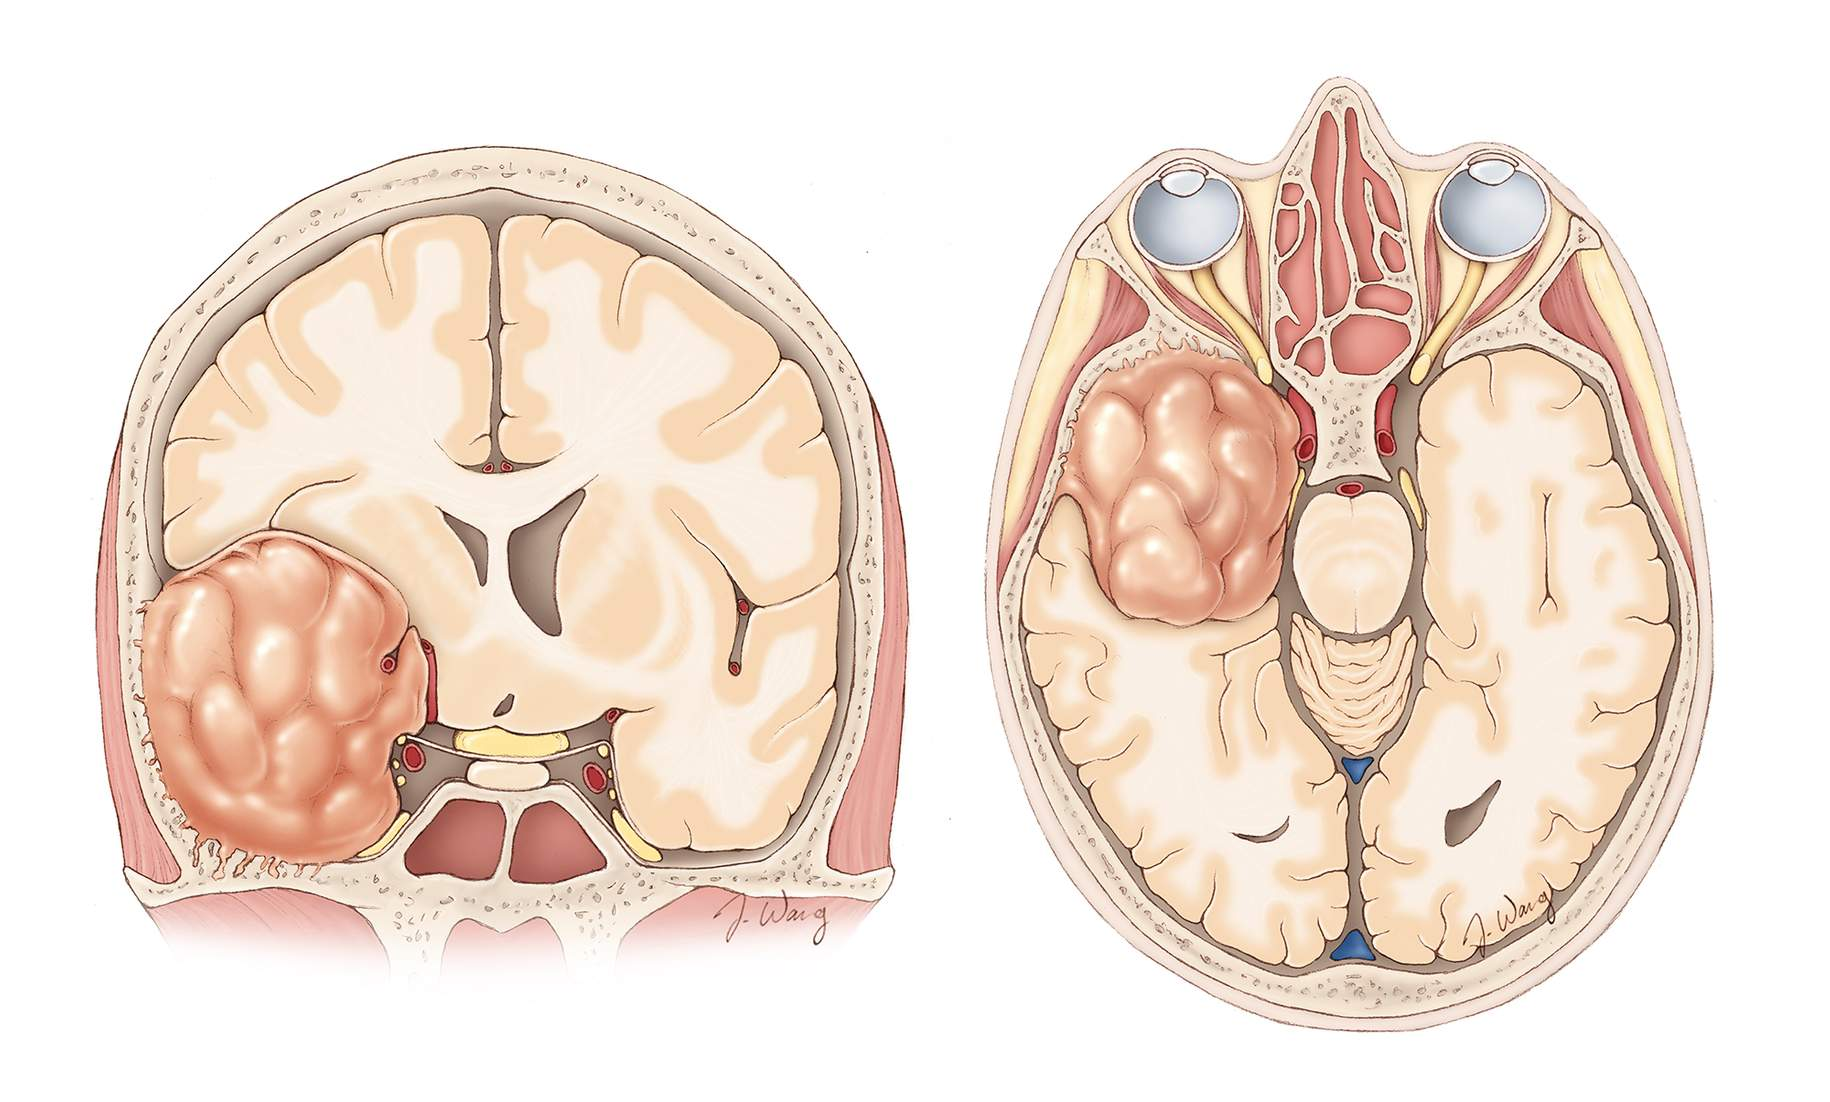 Figure 4: Coronal and axial views of a middle/medial sphenoid wing meningioma with its typical relationship to the surrounding vascular structures is demonstrated. More prominent evidence of optic apparatus compression is usually present.